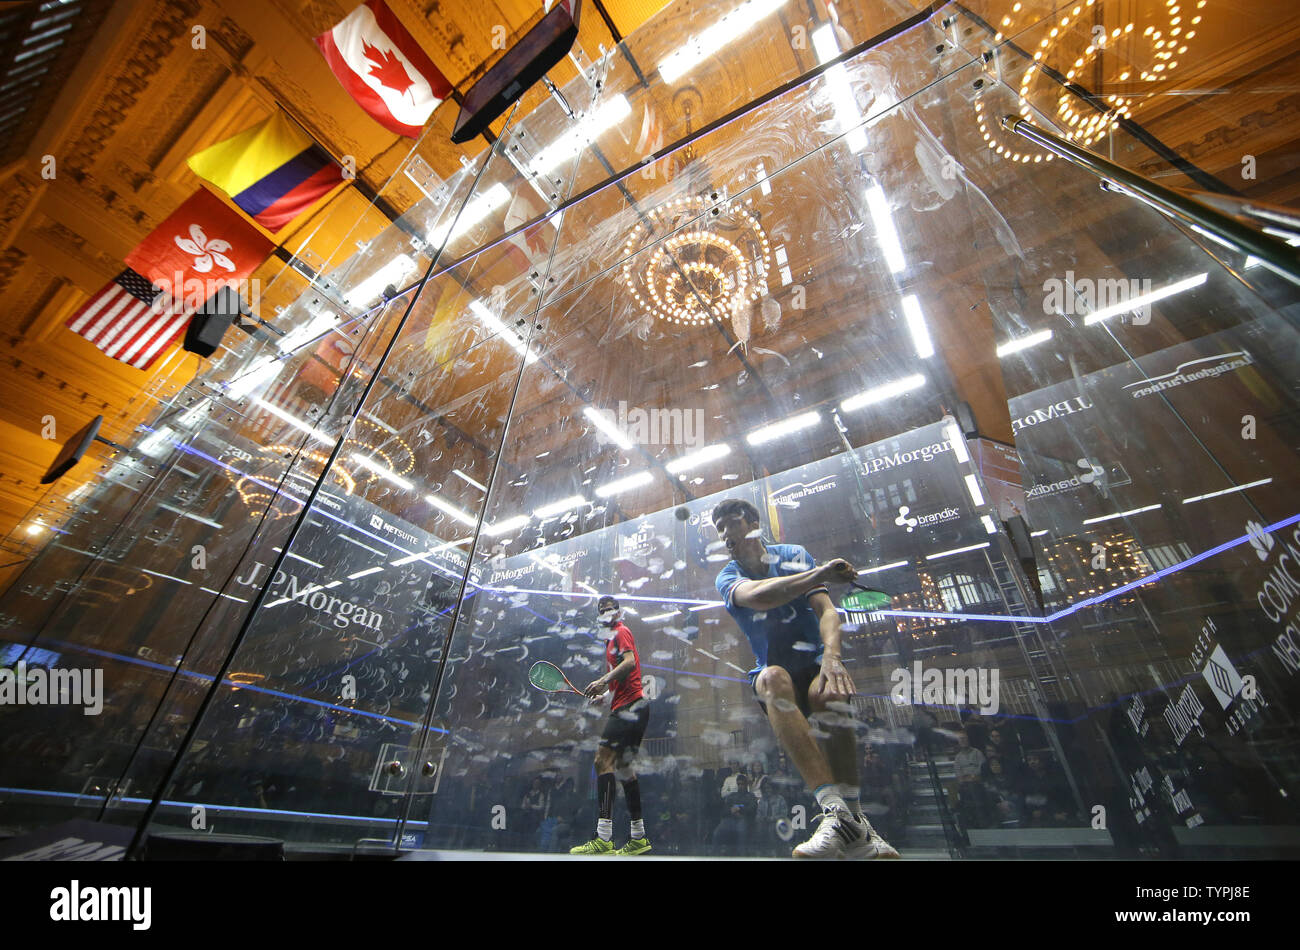 Chris Simpson of England hits a backhand in his match against Cesar Salazar of Mexico at JPMorgan Chase & Co.'s 18th annual  'Tournament of Champions' Professional Squash Tournament in Grand Central Terminal in New York City on January 16, 2015. The annual tournament is scheduled to continue through January 23rd.       Photo by John Angelillo/UPI - Stock Image